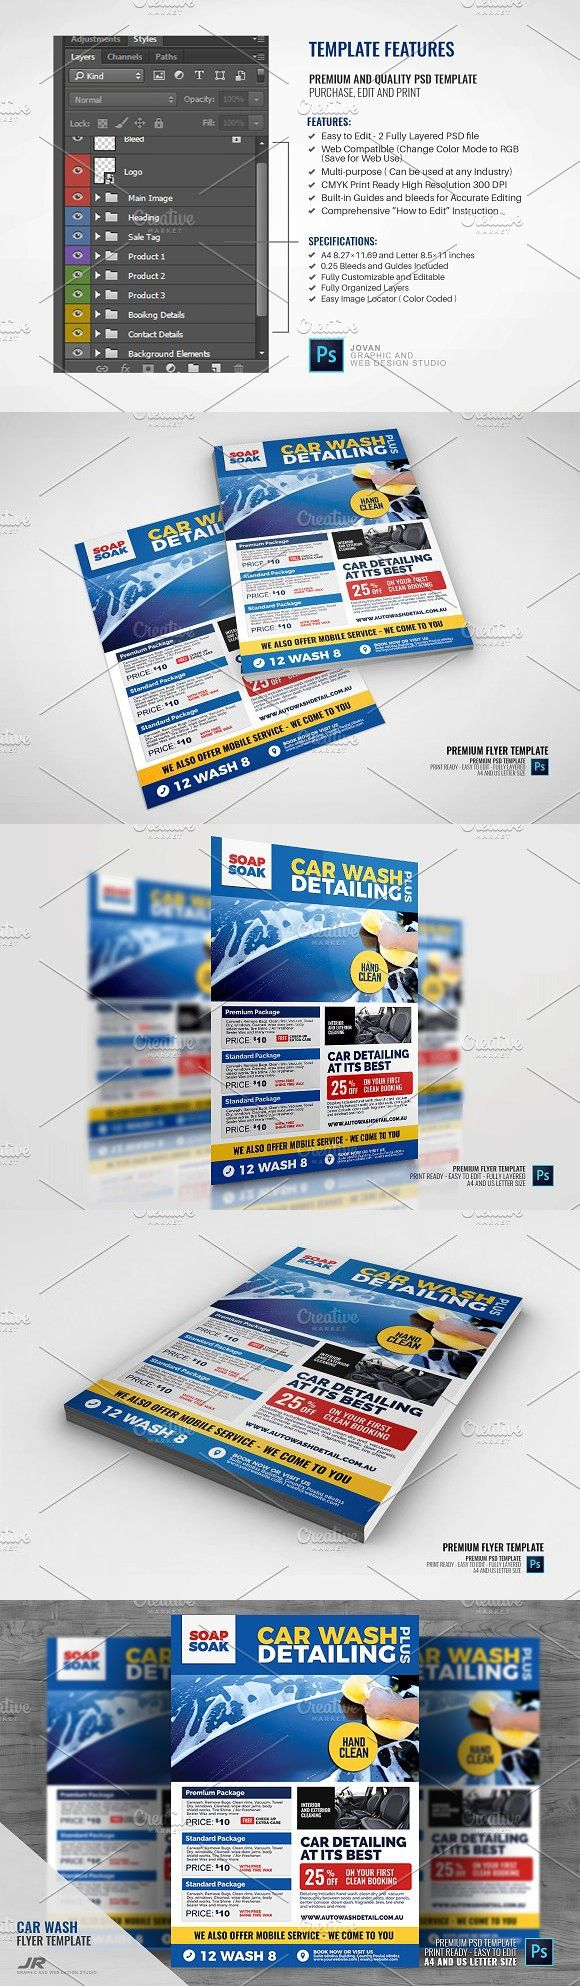 Car Wash Auto Cleaning Service Flyer